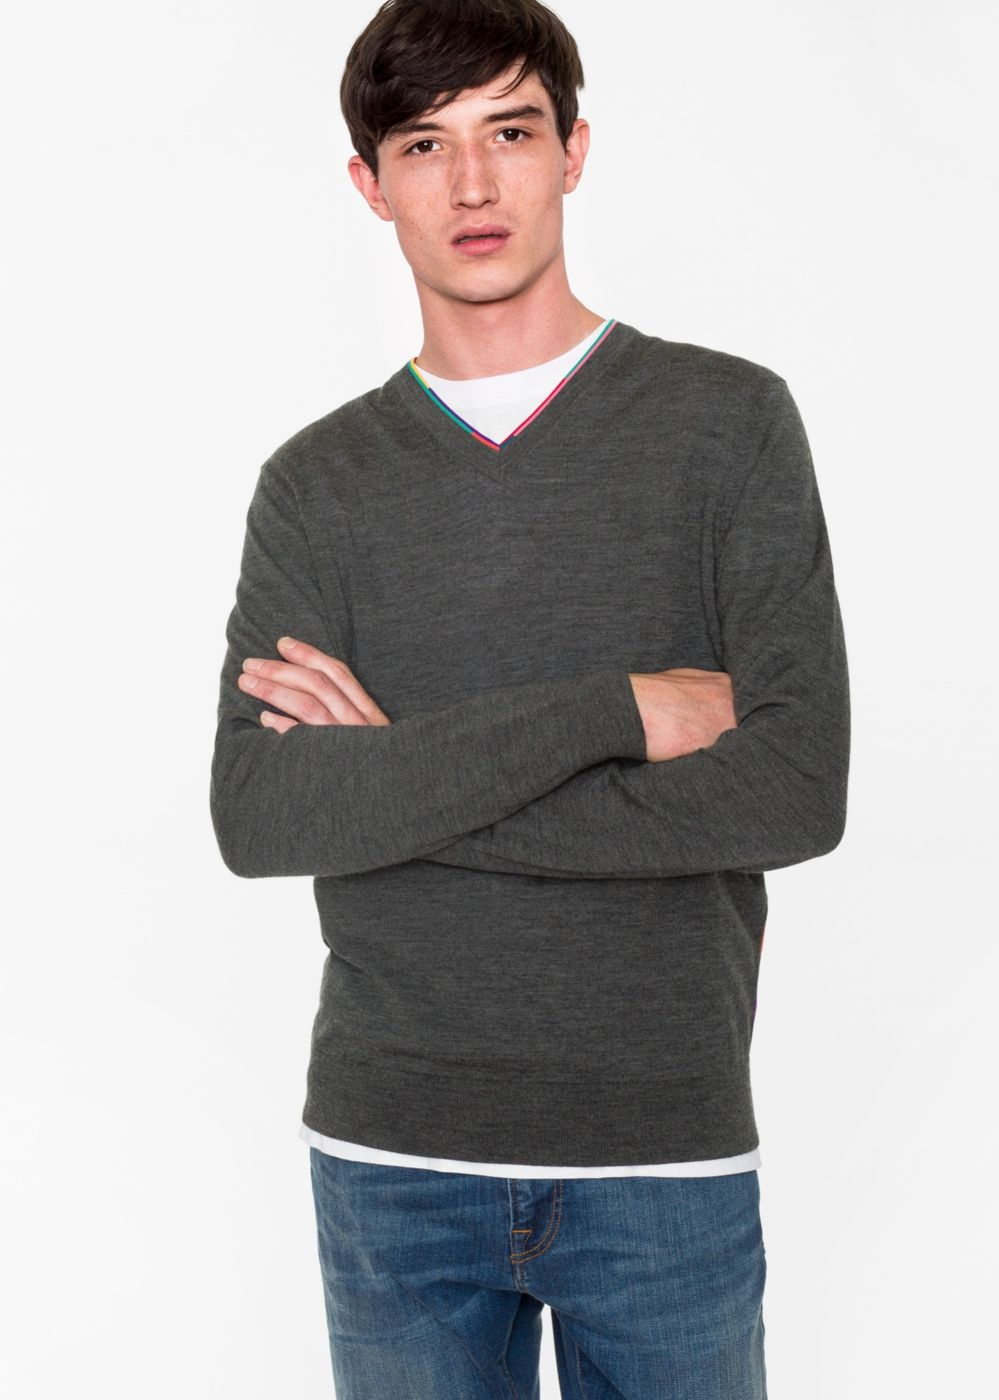 Paul Smith Men's Grey Marl Wool-Blend V-Neck Sweater With Multi-Coloured Stripe Detailing